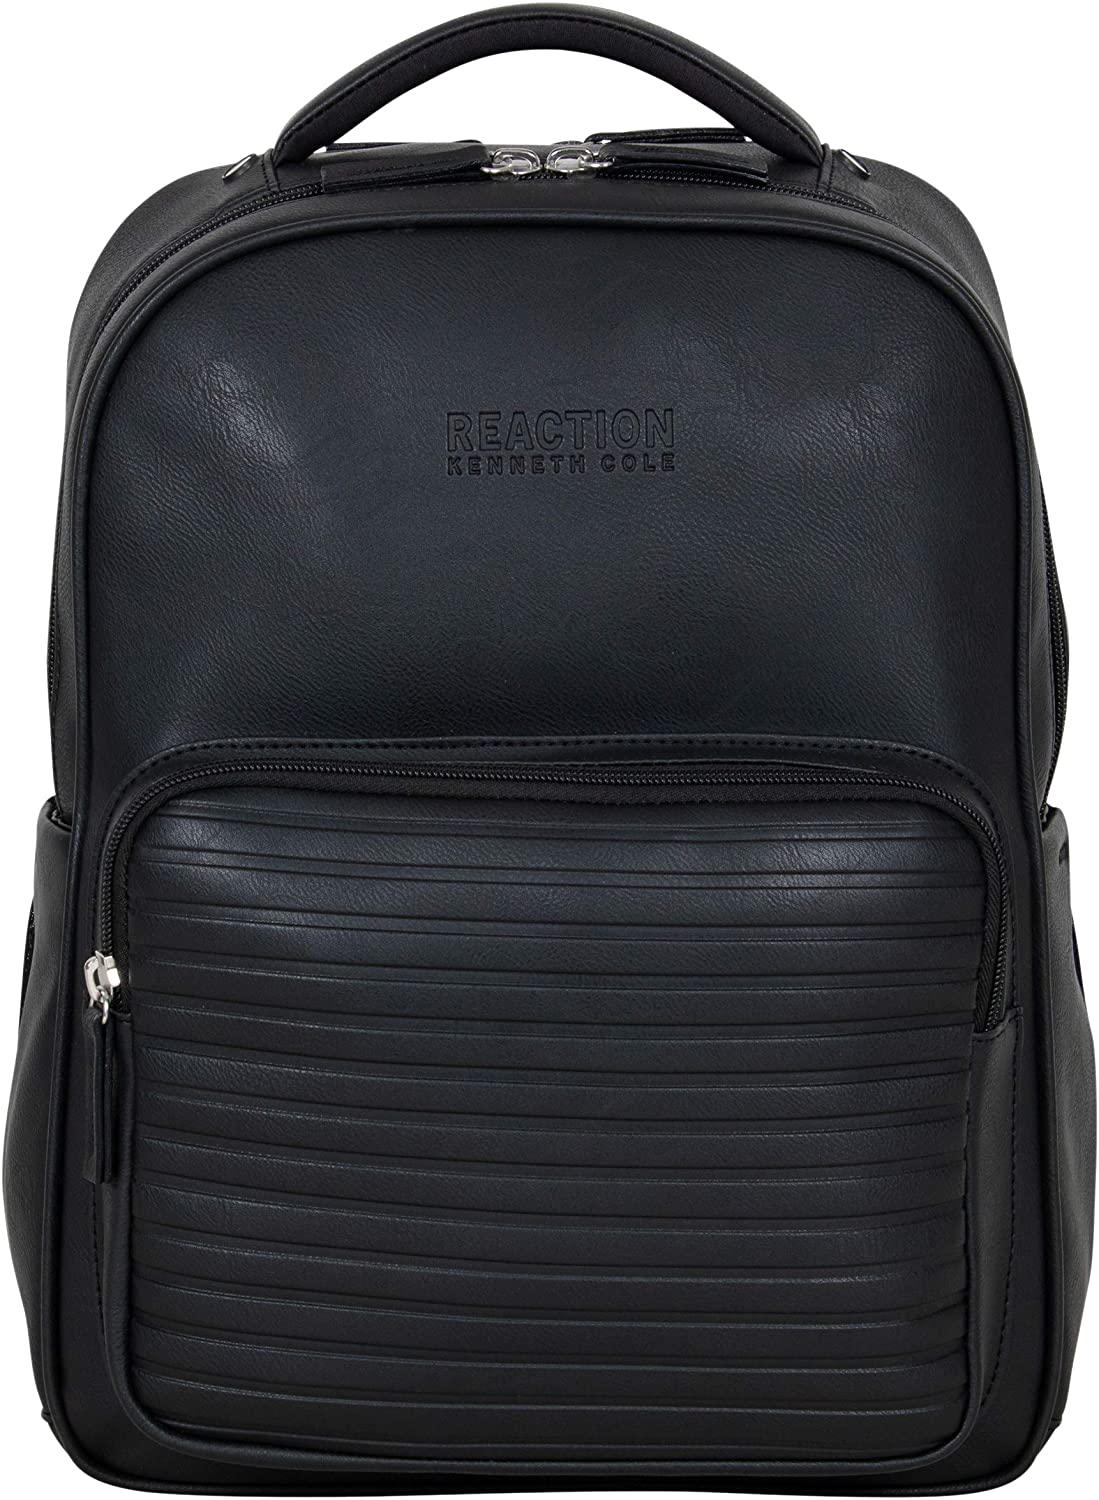 "Kenneth Cole On Track Pack Vegan Leather 15.6"" Laptop & Tablet Bookbag Anti-Theft RFID Backpack for School, Work, Travel"